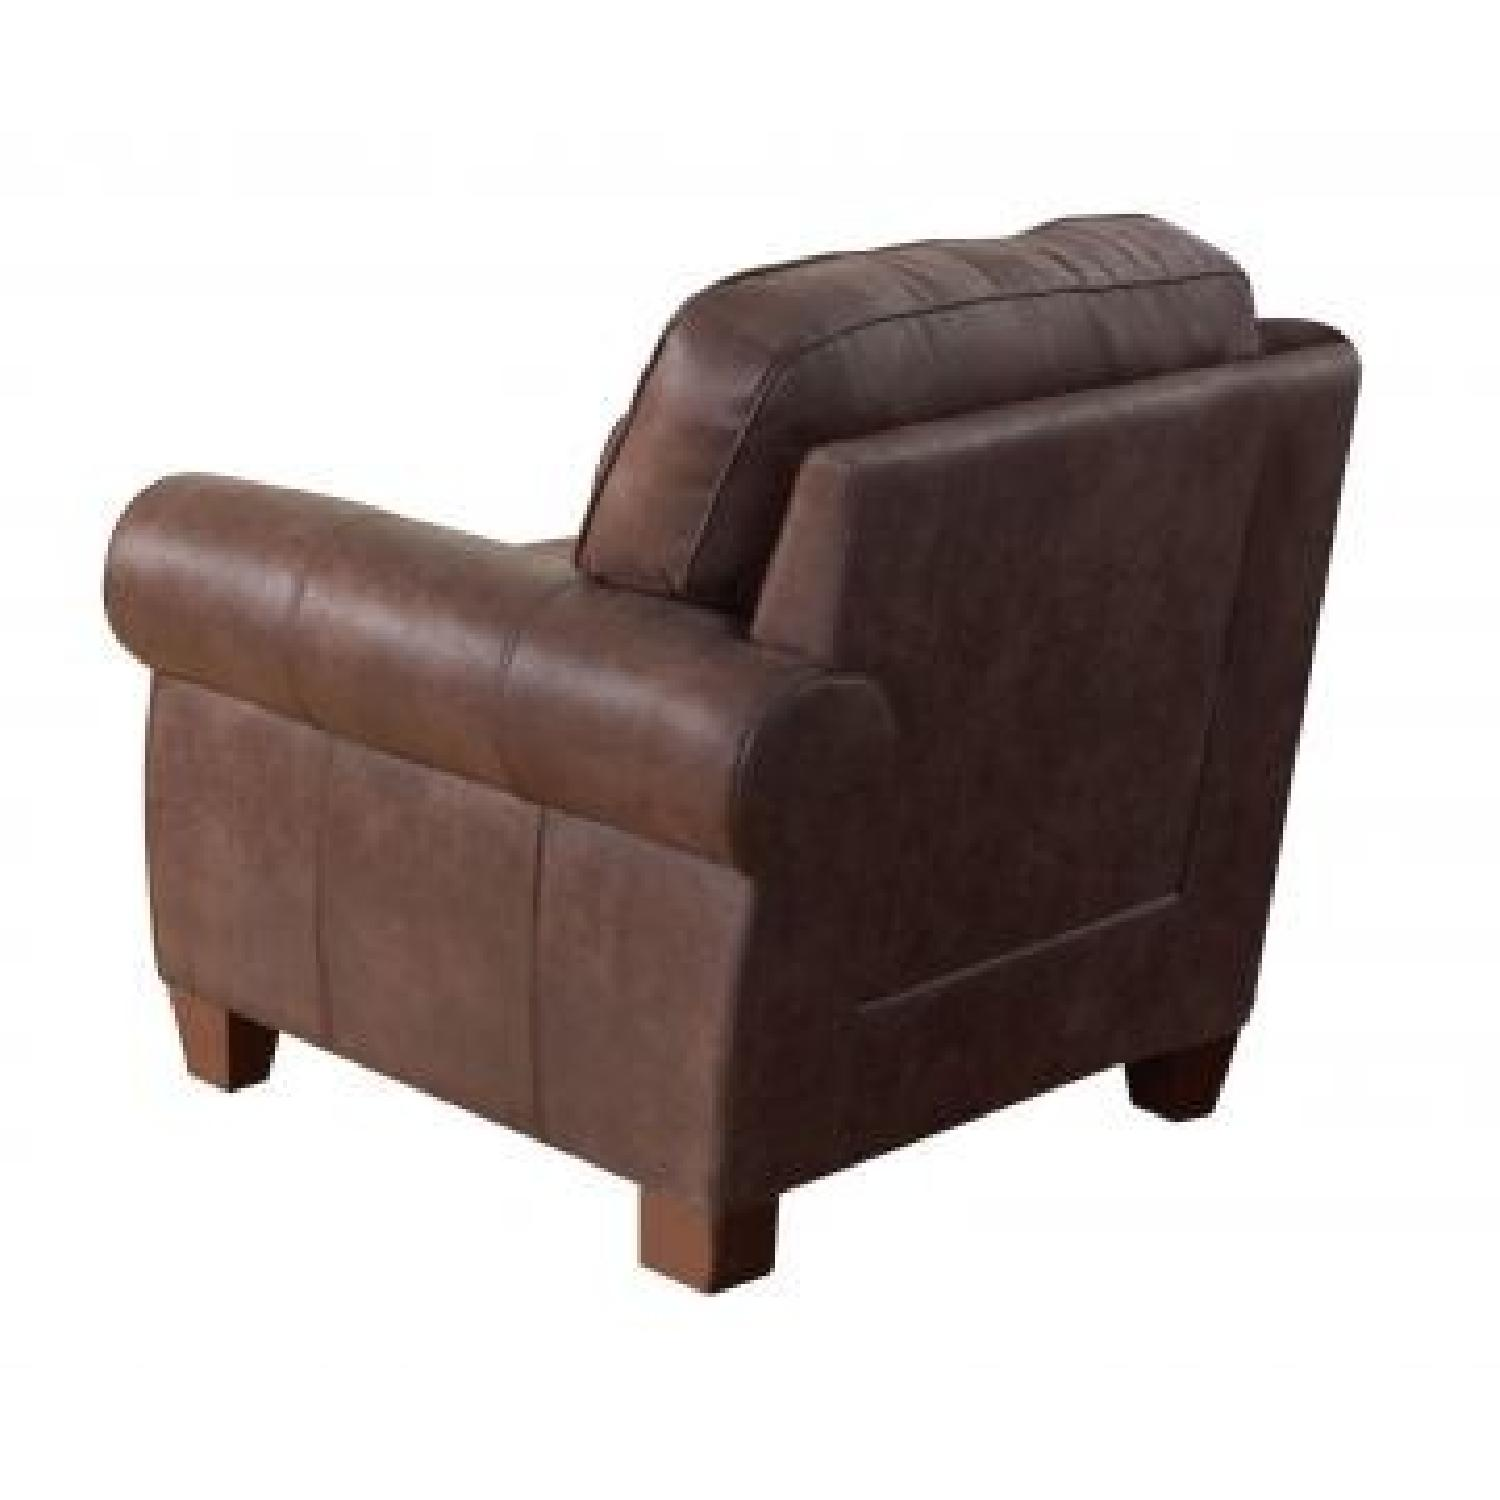 Coaster Accent Chair Coaster Brown Faux Leather Retro Style Accent Chair